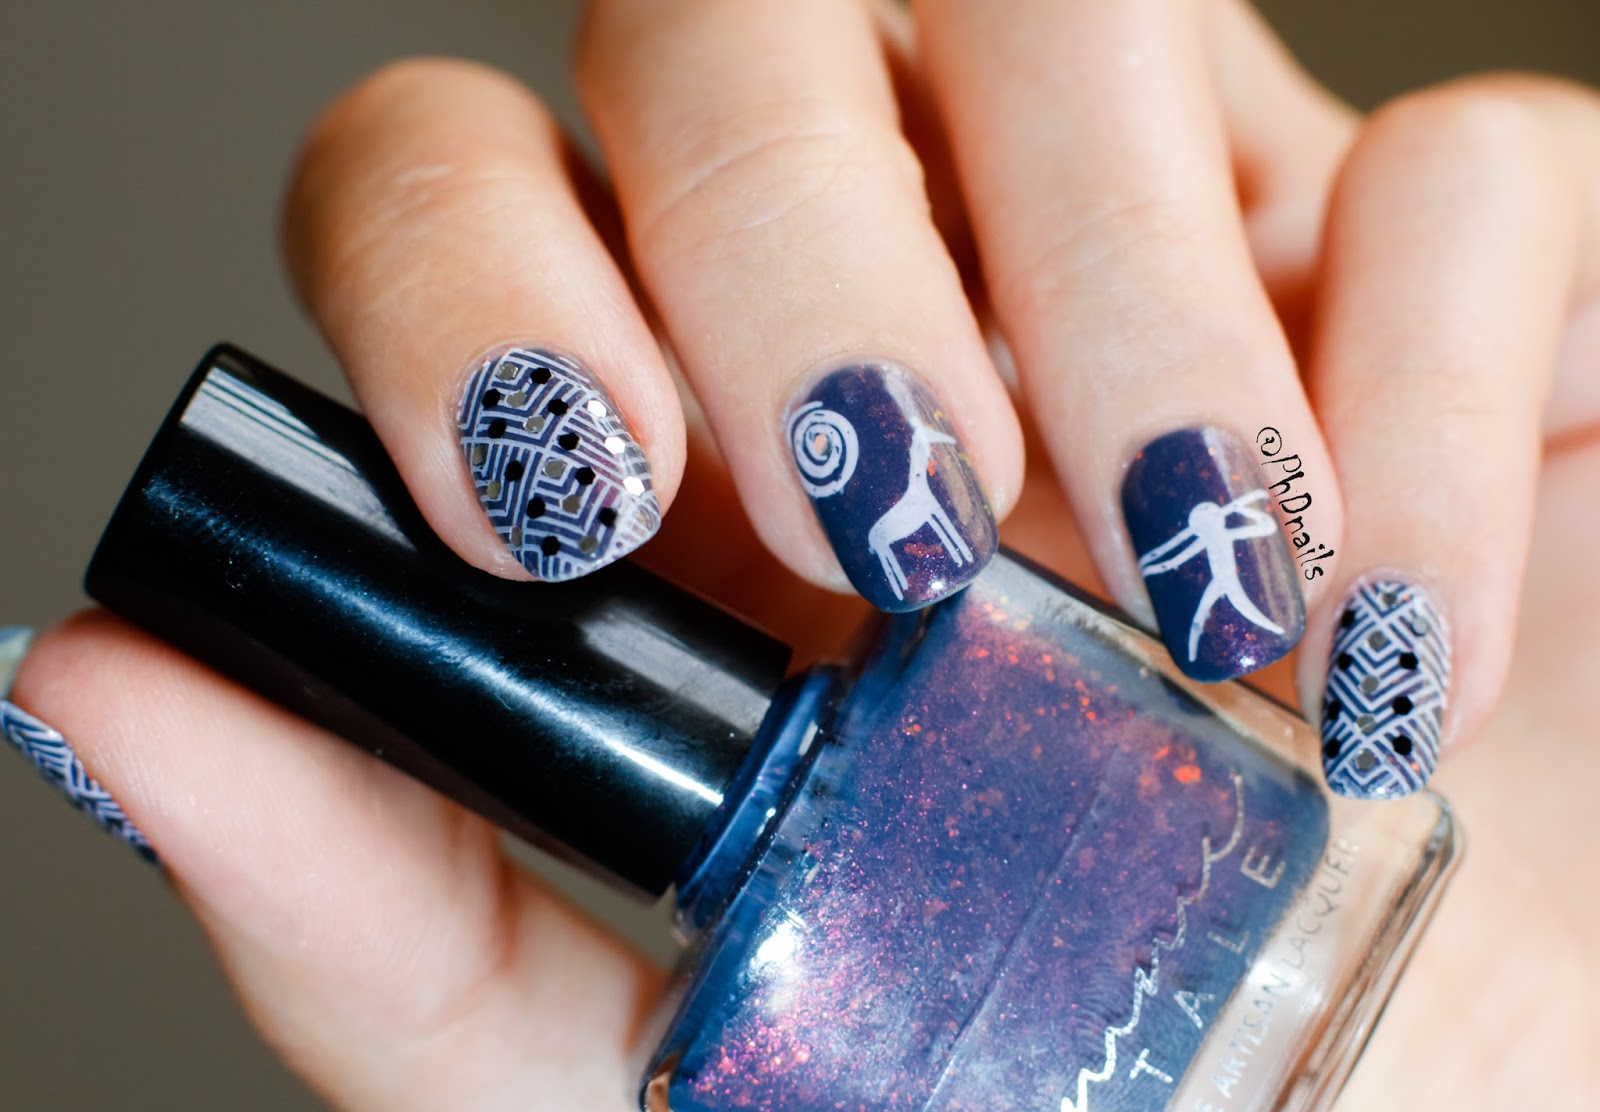 PhD nails: Femme fatale Lantern waste and tribal stamping nail art ...